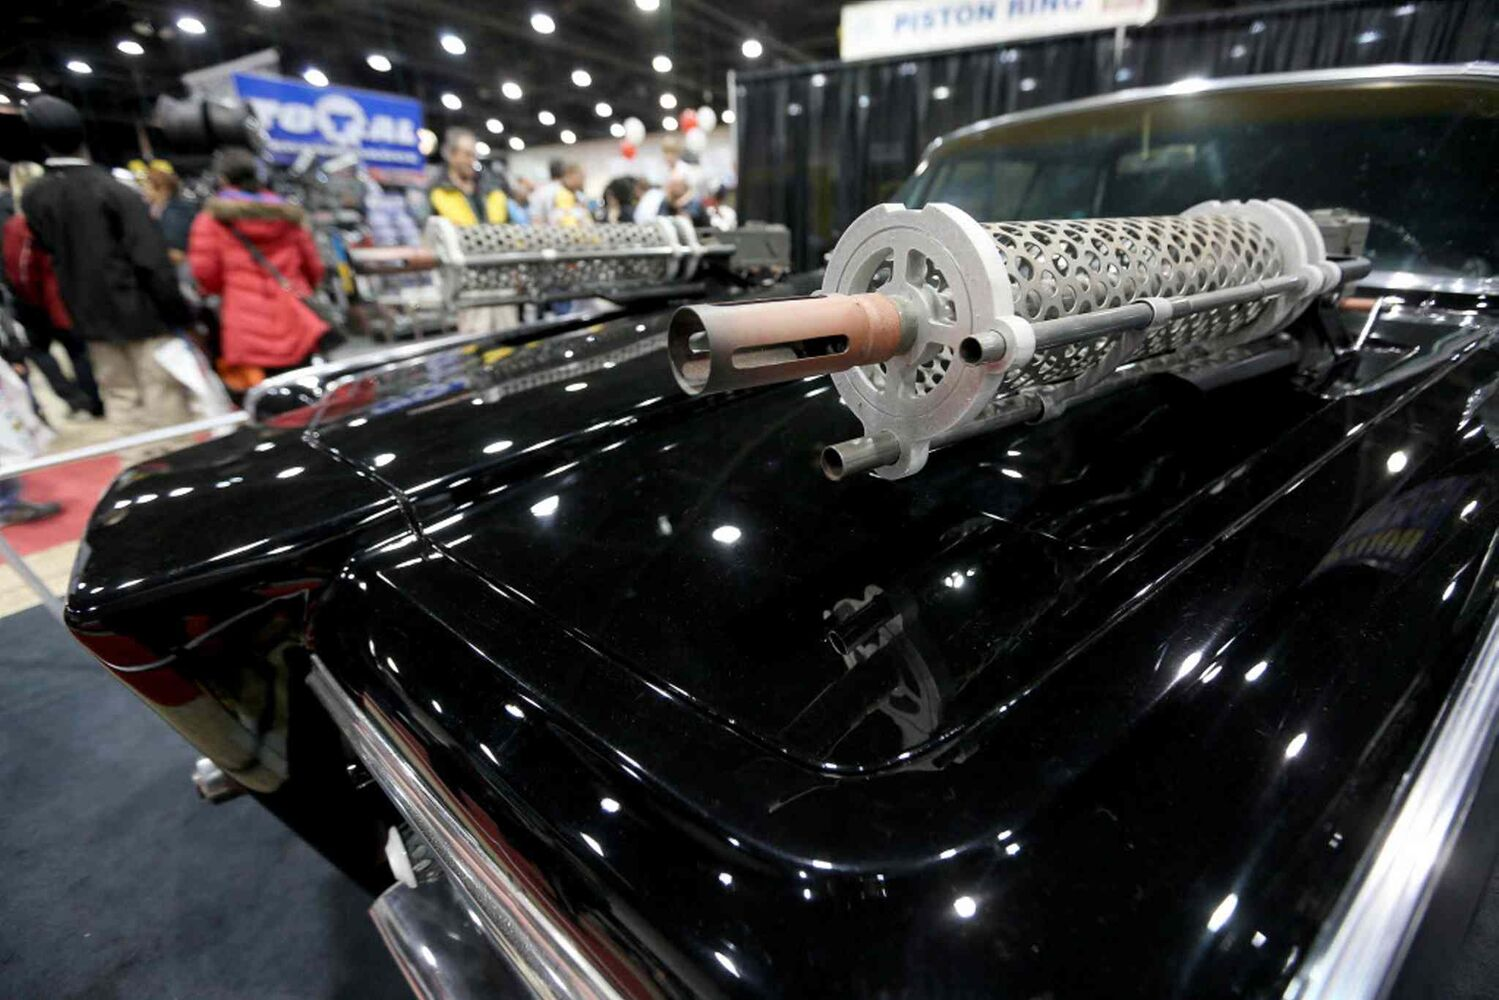 Machine guns mounted on the car from the Green Hornet movie at the World of Wheels Car show. (TREVOR HAGAN / WINNIPEG FREE PRESS)